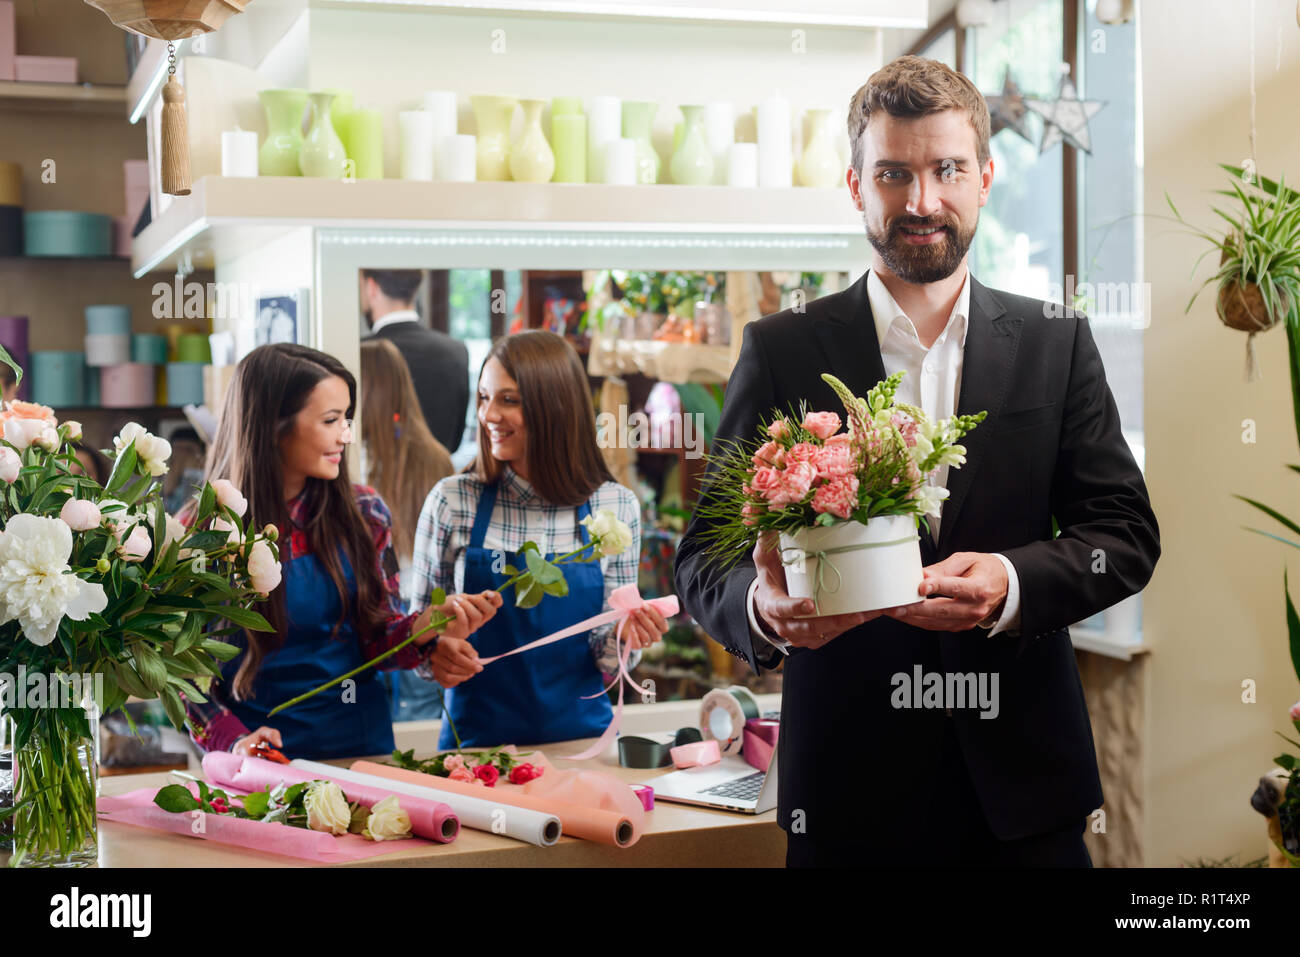 Hansome man bought flowers - Stock Image